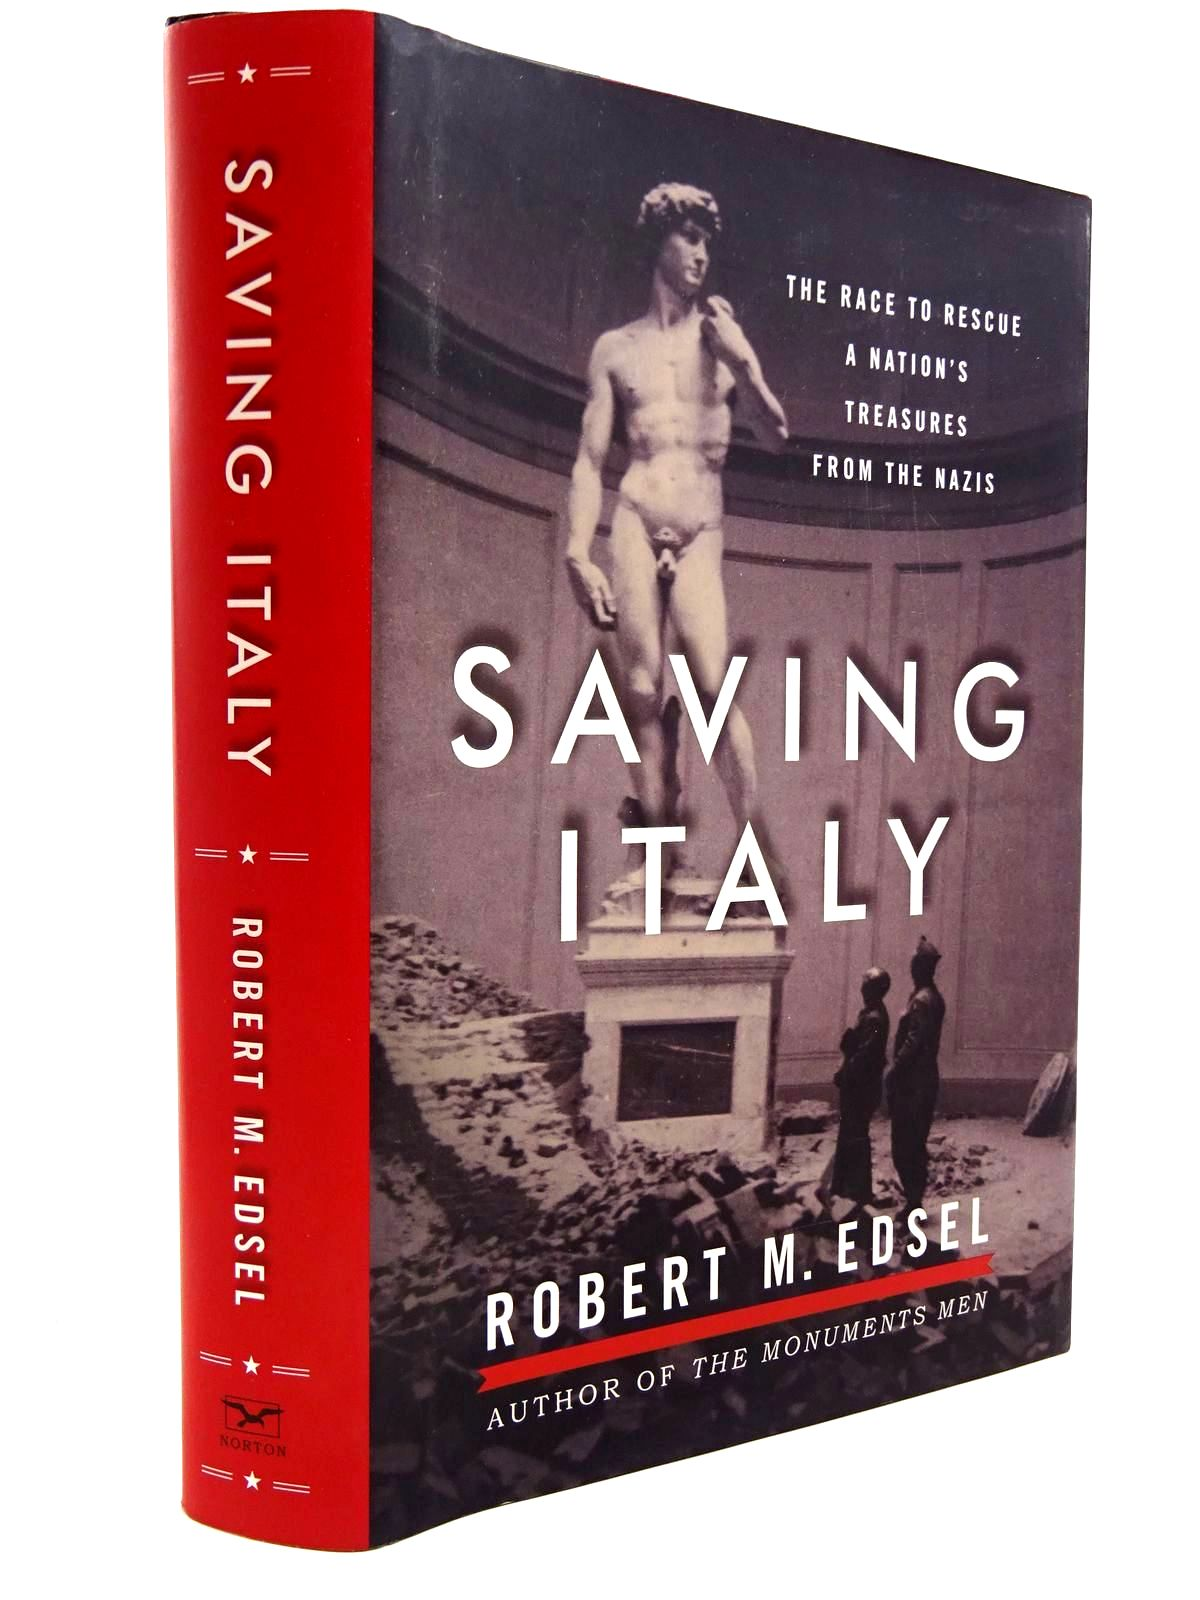 Photo of SAVING ITALY THE RACE TO RESCUE A NATION'S TREASURES FROM THE NAZIS written by Edsel, Robert M. published by W.W. Norton & Company Inc. (STOCK CODE: 2131027)  for sale by Stella & Rose's Books